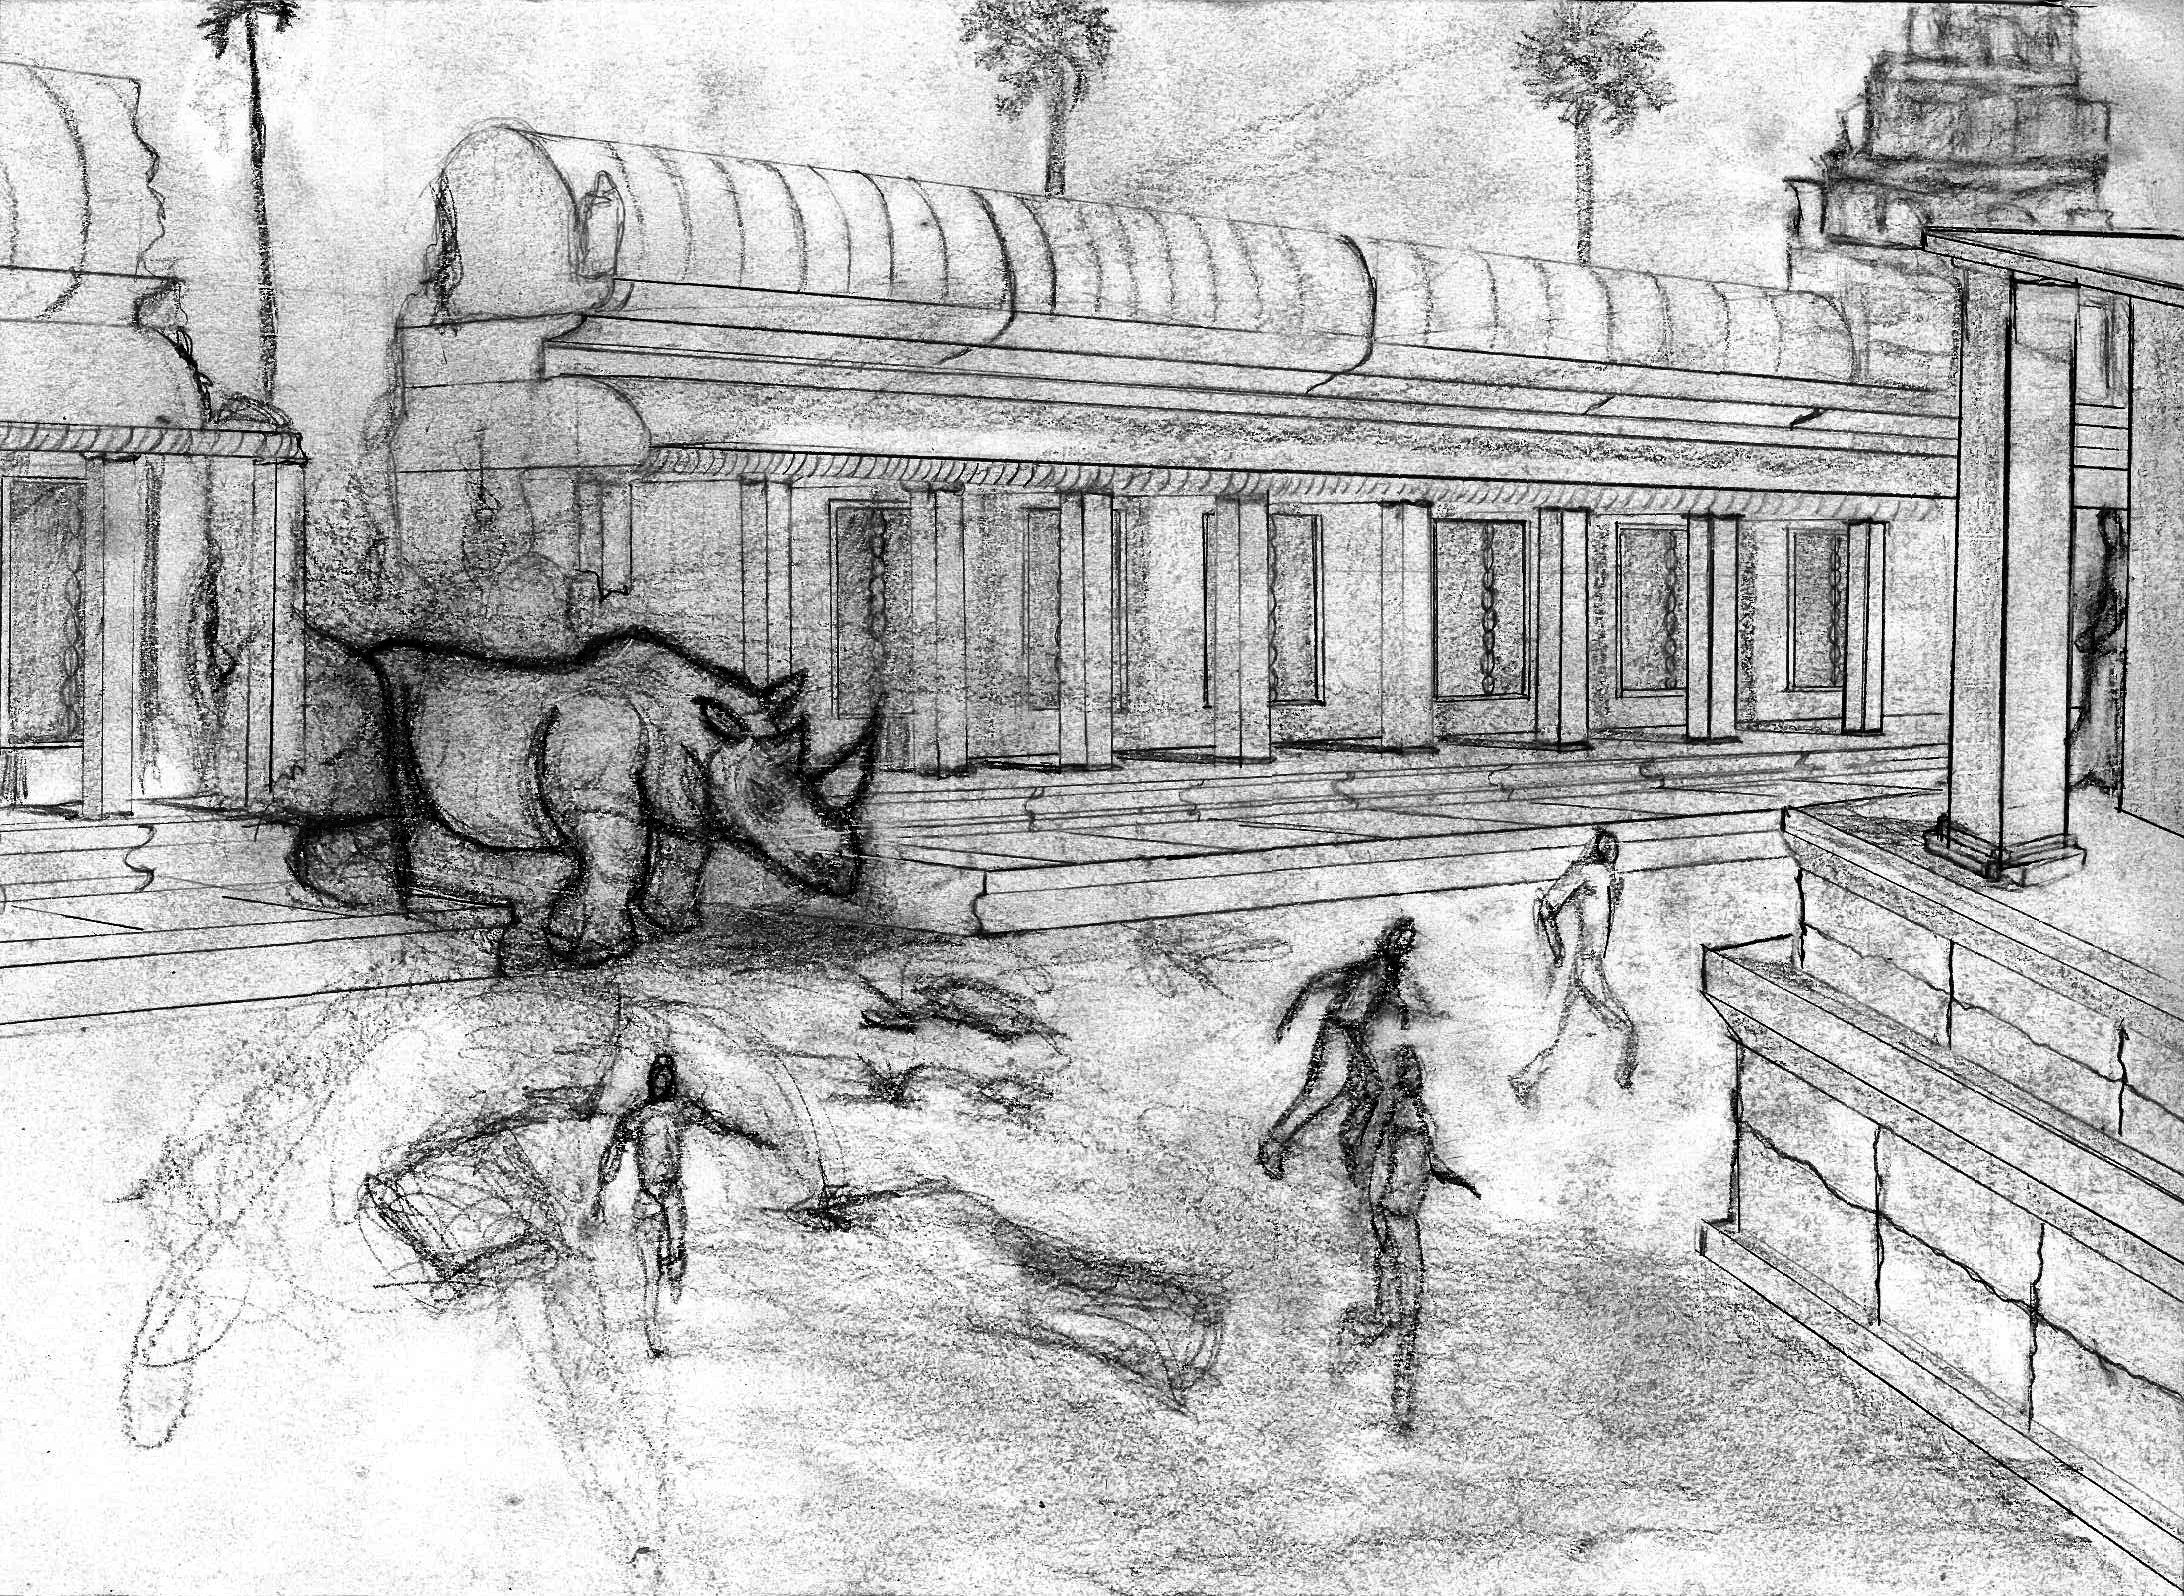 The Rhinopocalypse takes place in Angkor Wat! The Rhinopocalypse takes place in lots of places!